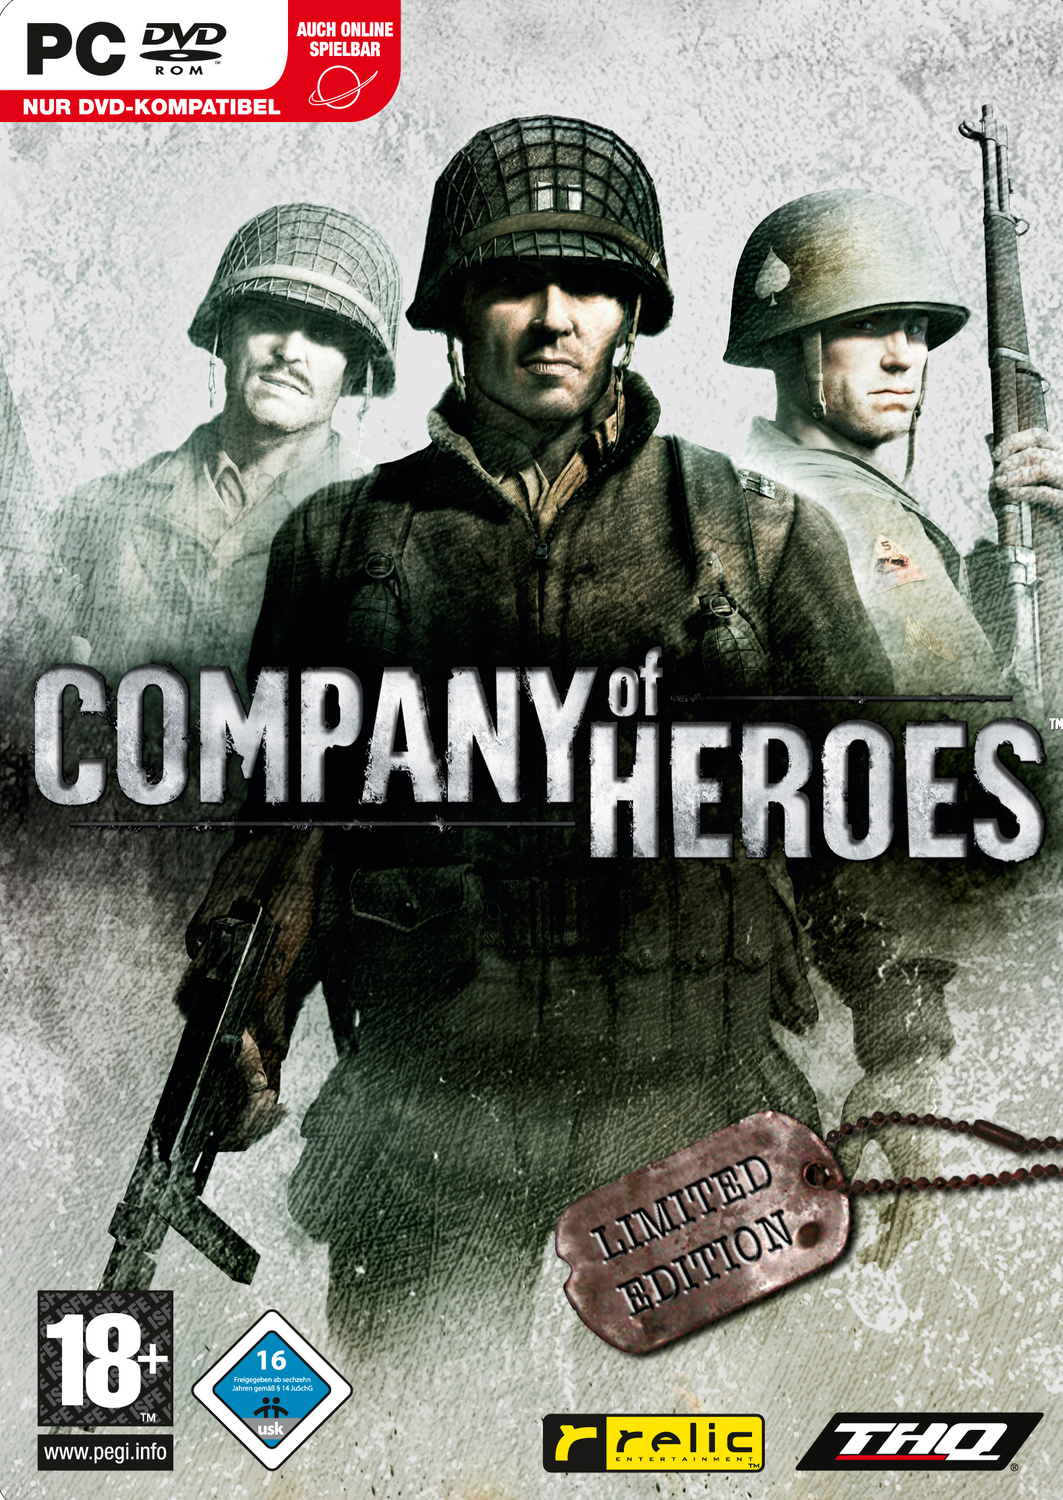 Company of Heroes Special Edition im Steelbook